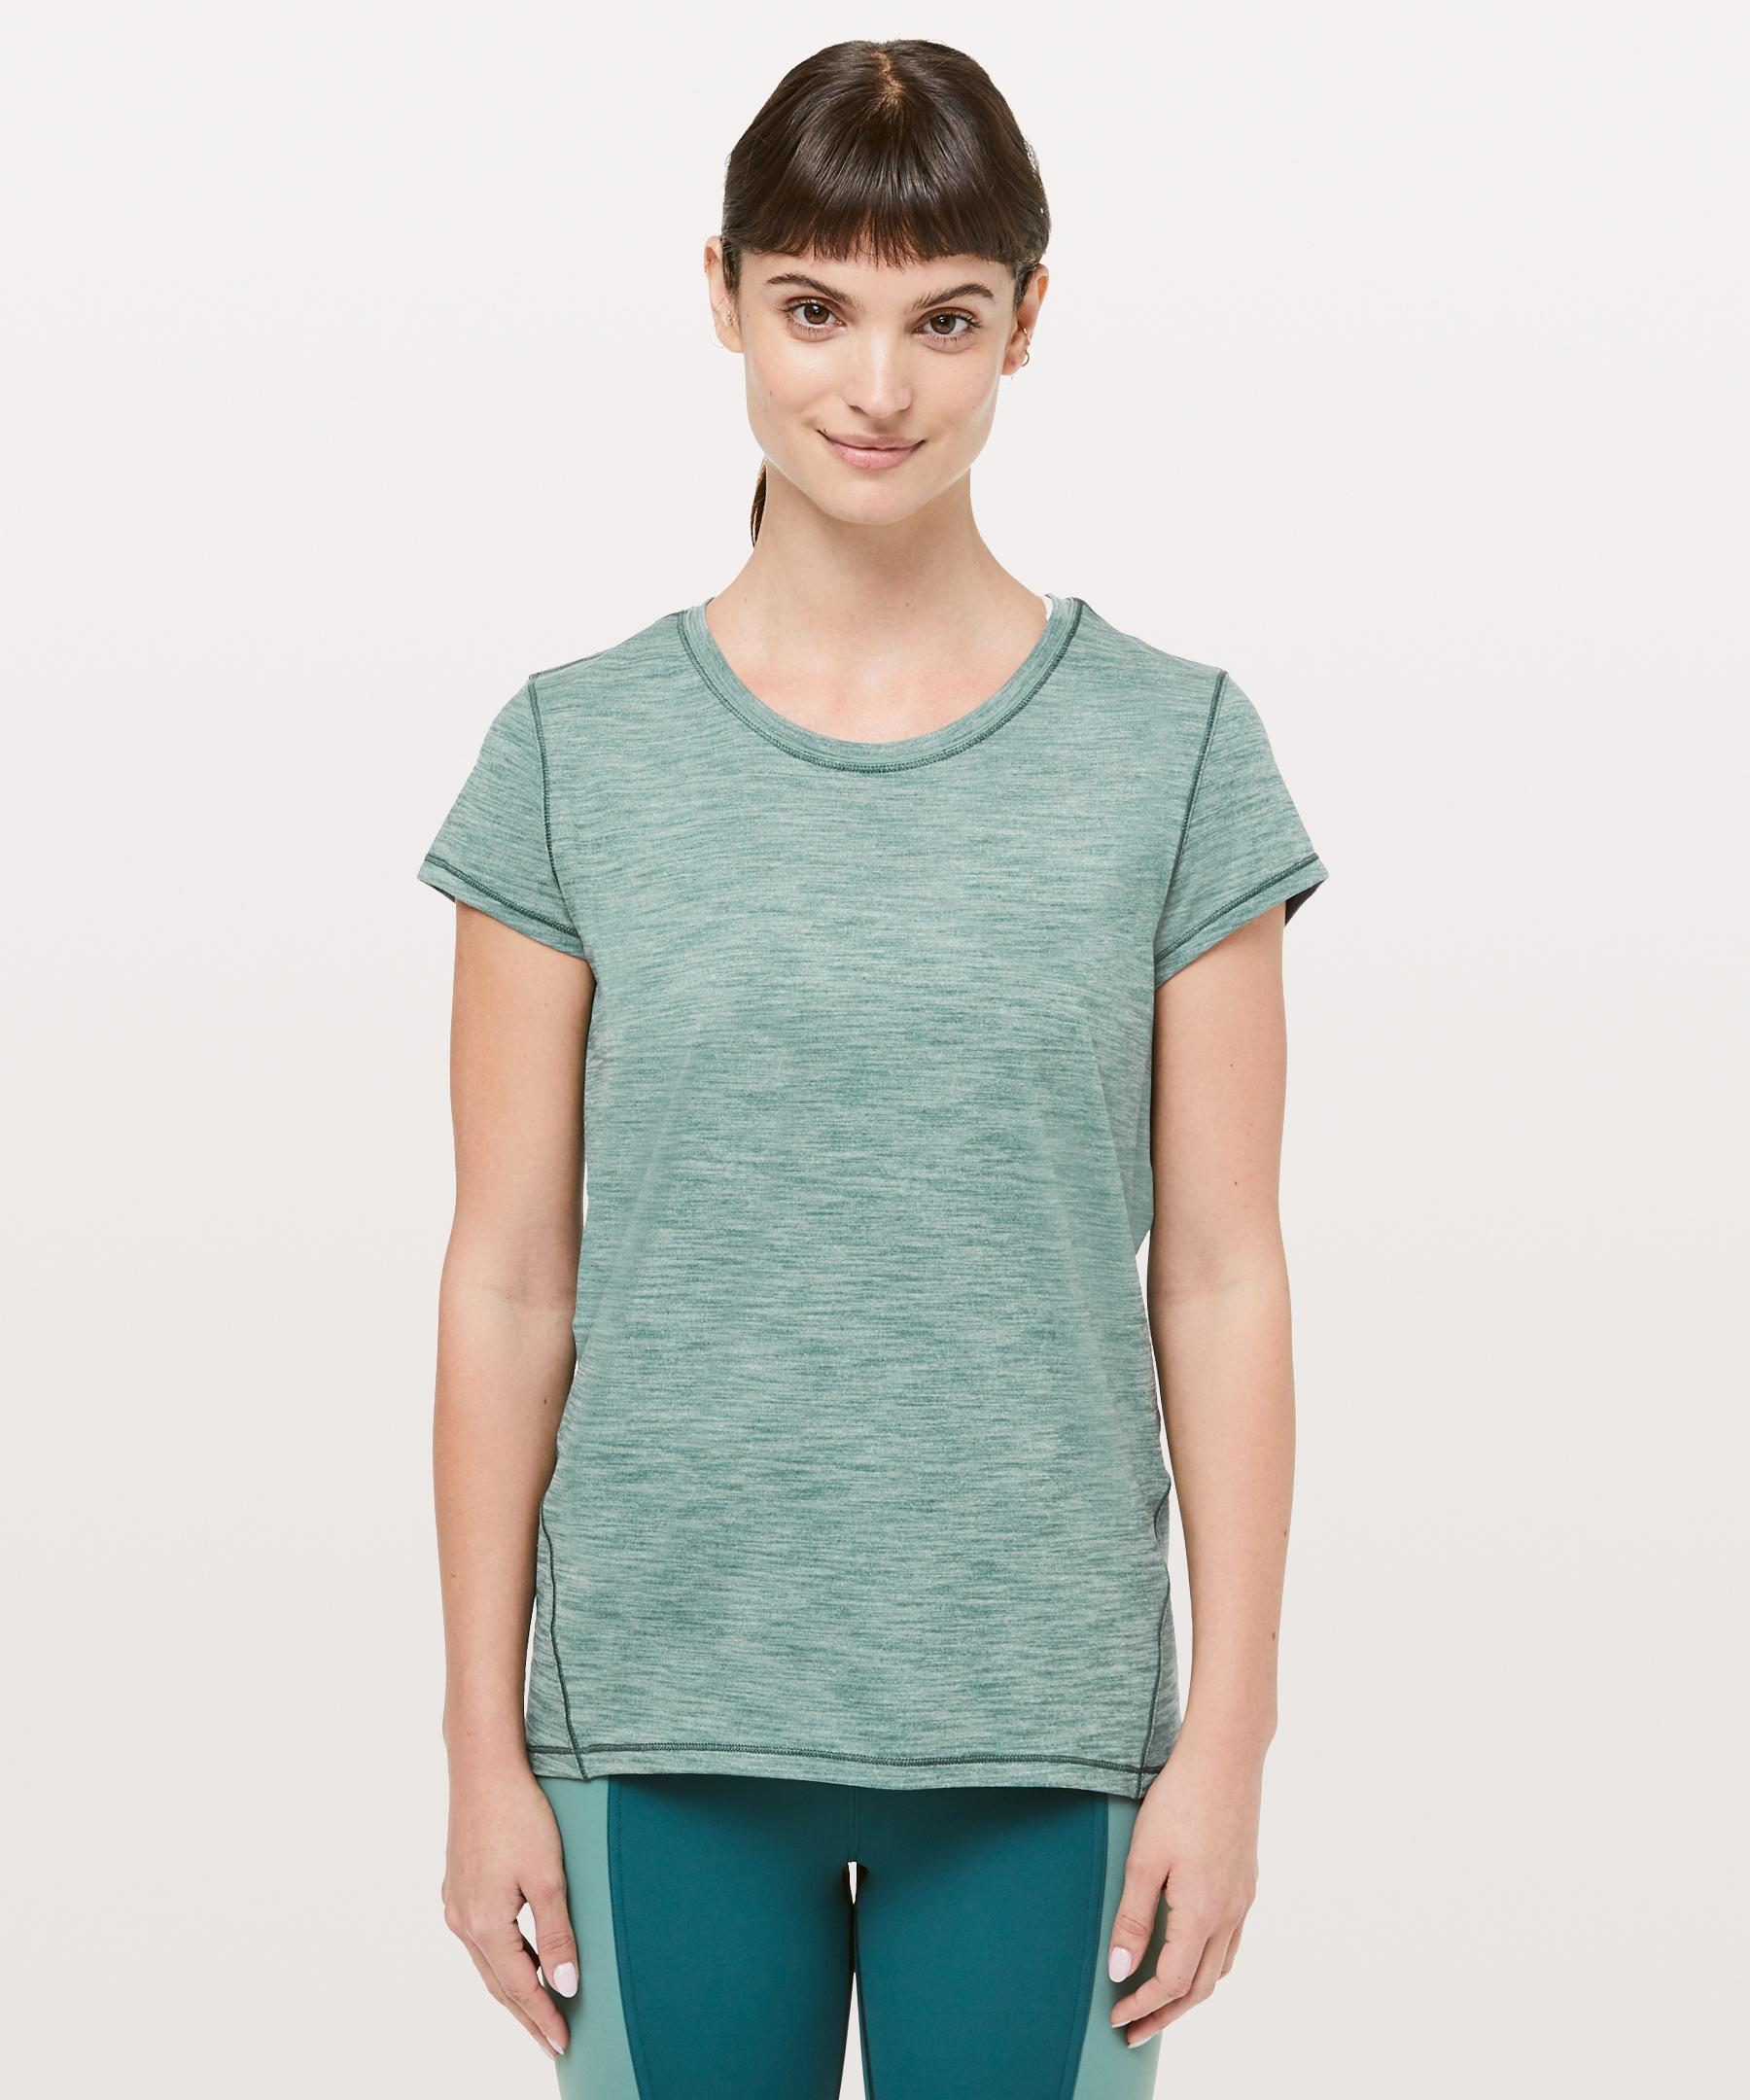 d04bf91405fe4 Lyst - lululemon athletica Another Mile Short Sleeve in Green - Save 28%